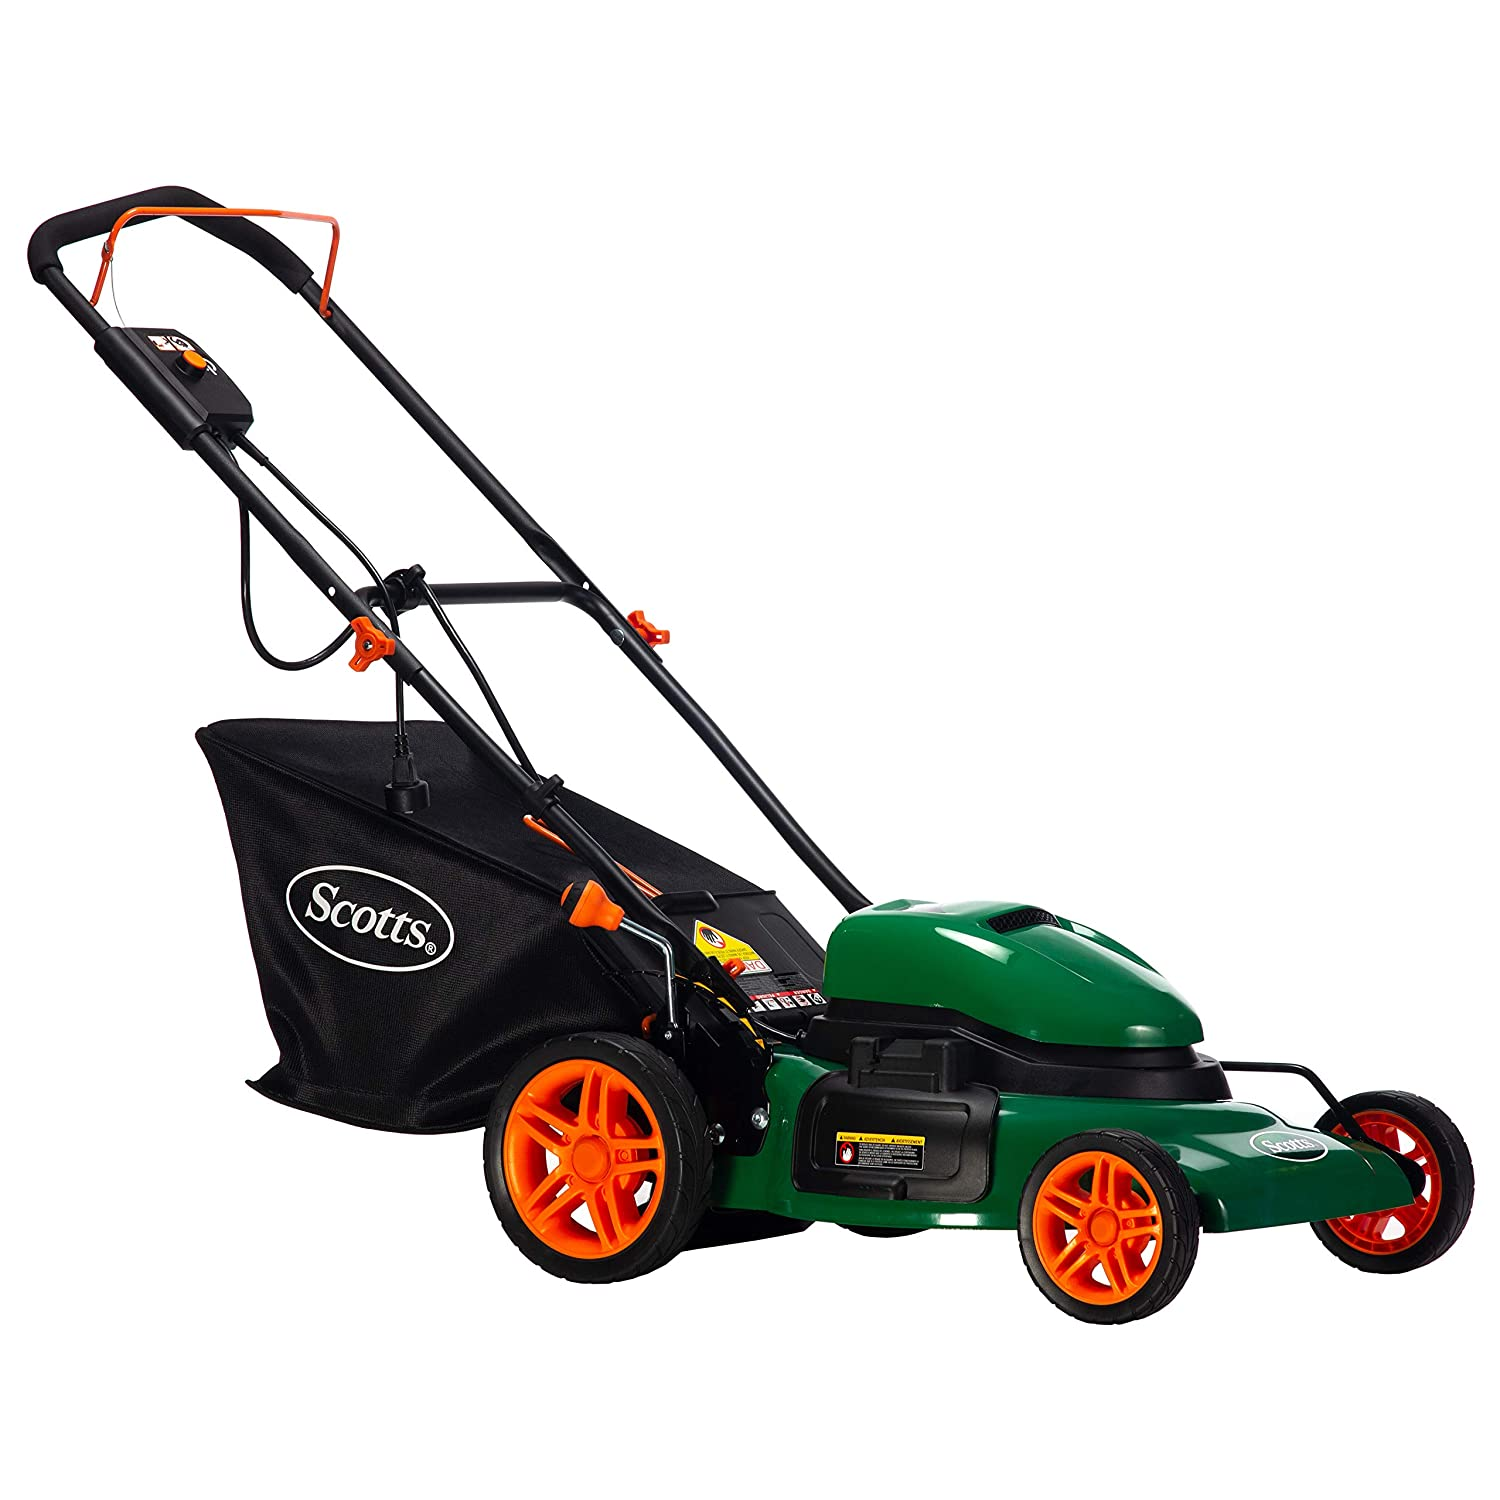 Scotts Outdoor Power Tools best Corded Electric Lawn Mower